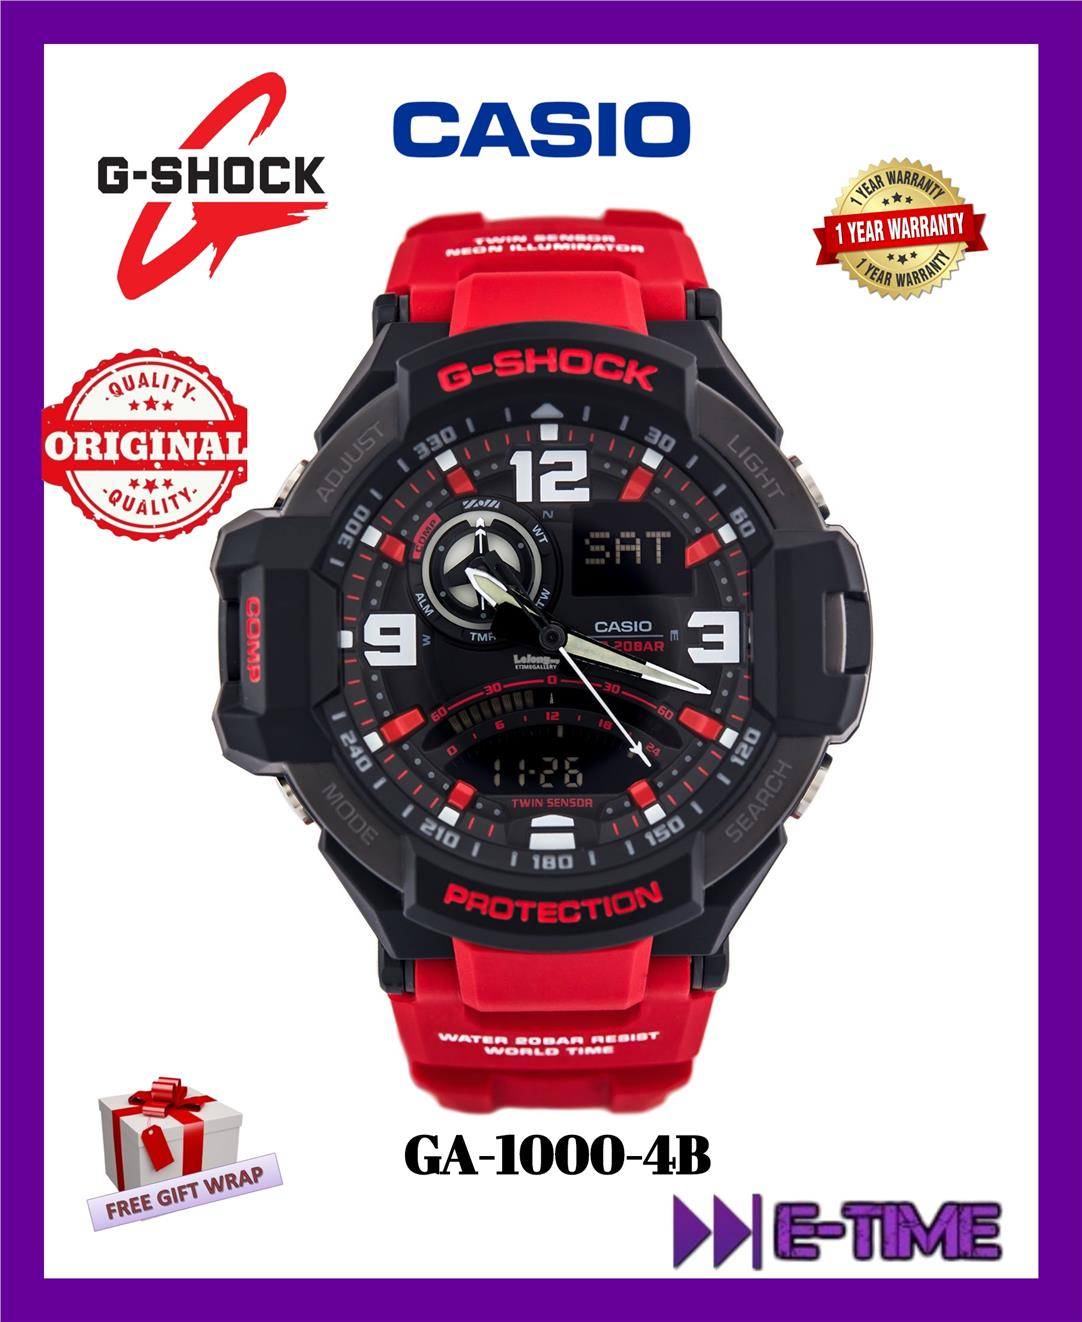 51474a9c5f9 CASIO G-SHOCK ORIGINAL GA-1000-4B GRA (end 1 8 2020 1 15 PM)